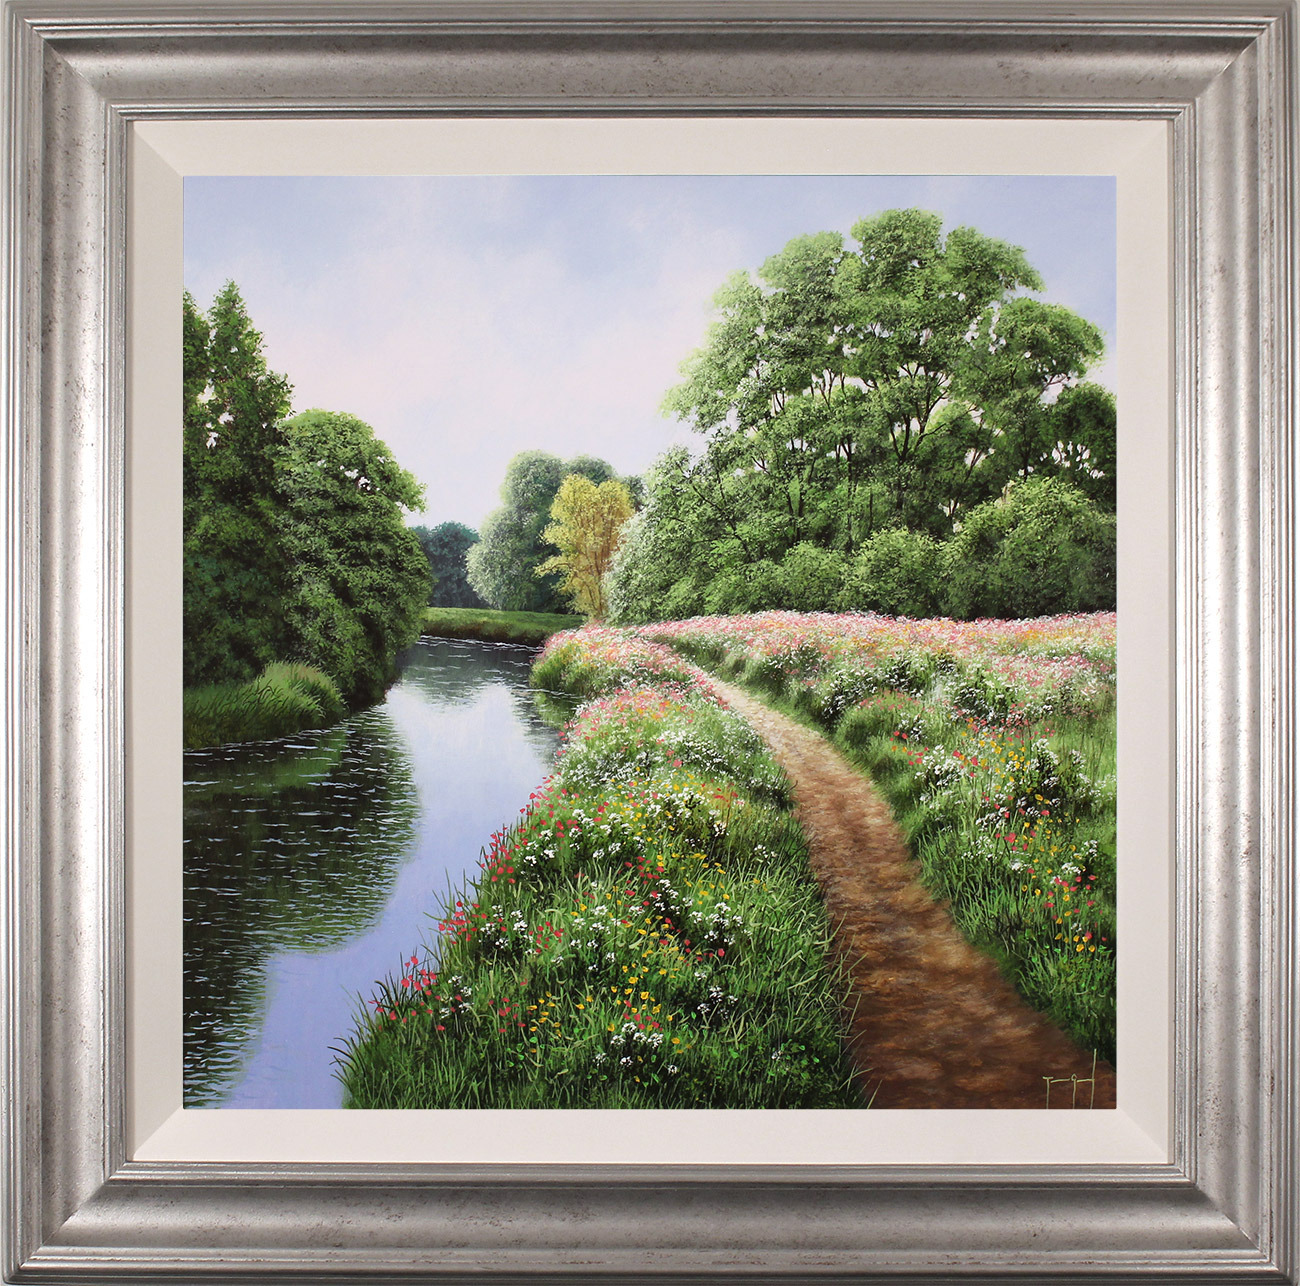 Terry Grundy, Original oil painting on panel, Tranquil Midsummer, Yorkshire Wolds Click to enlarge